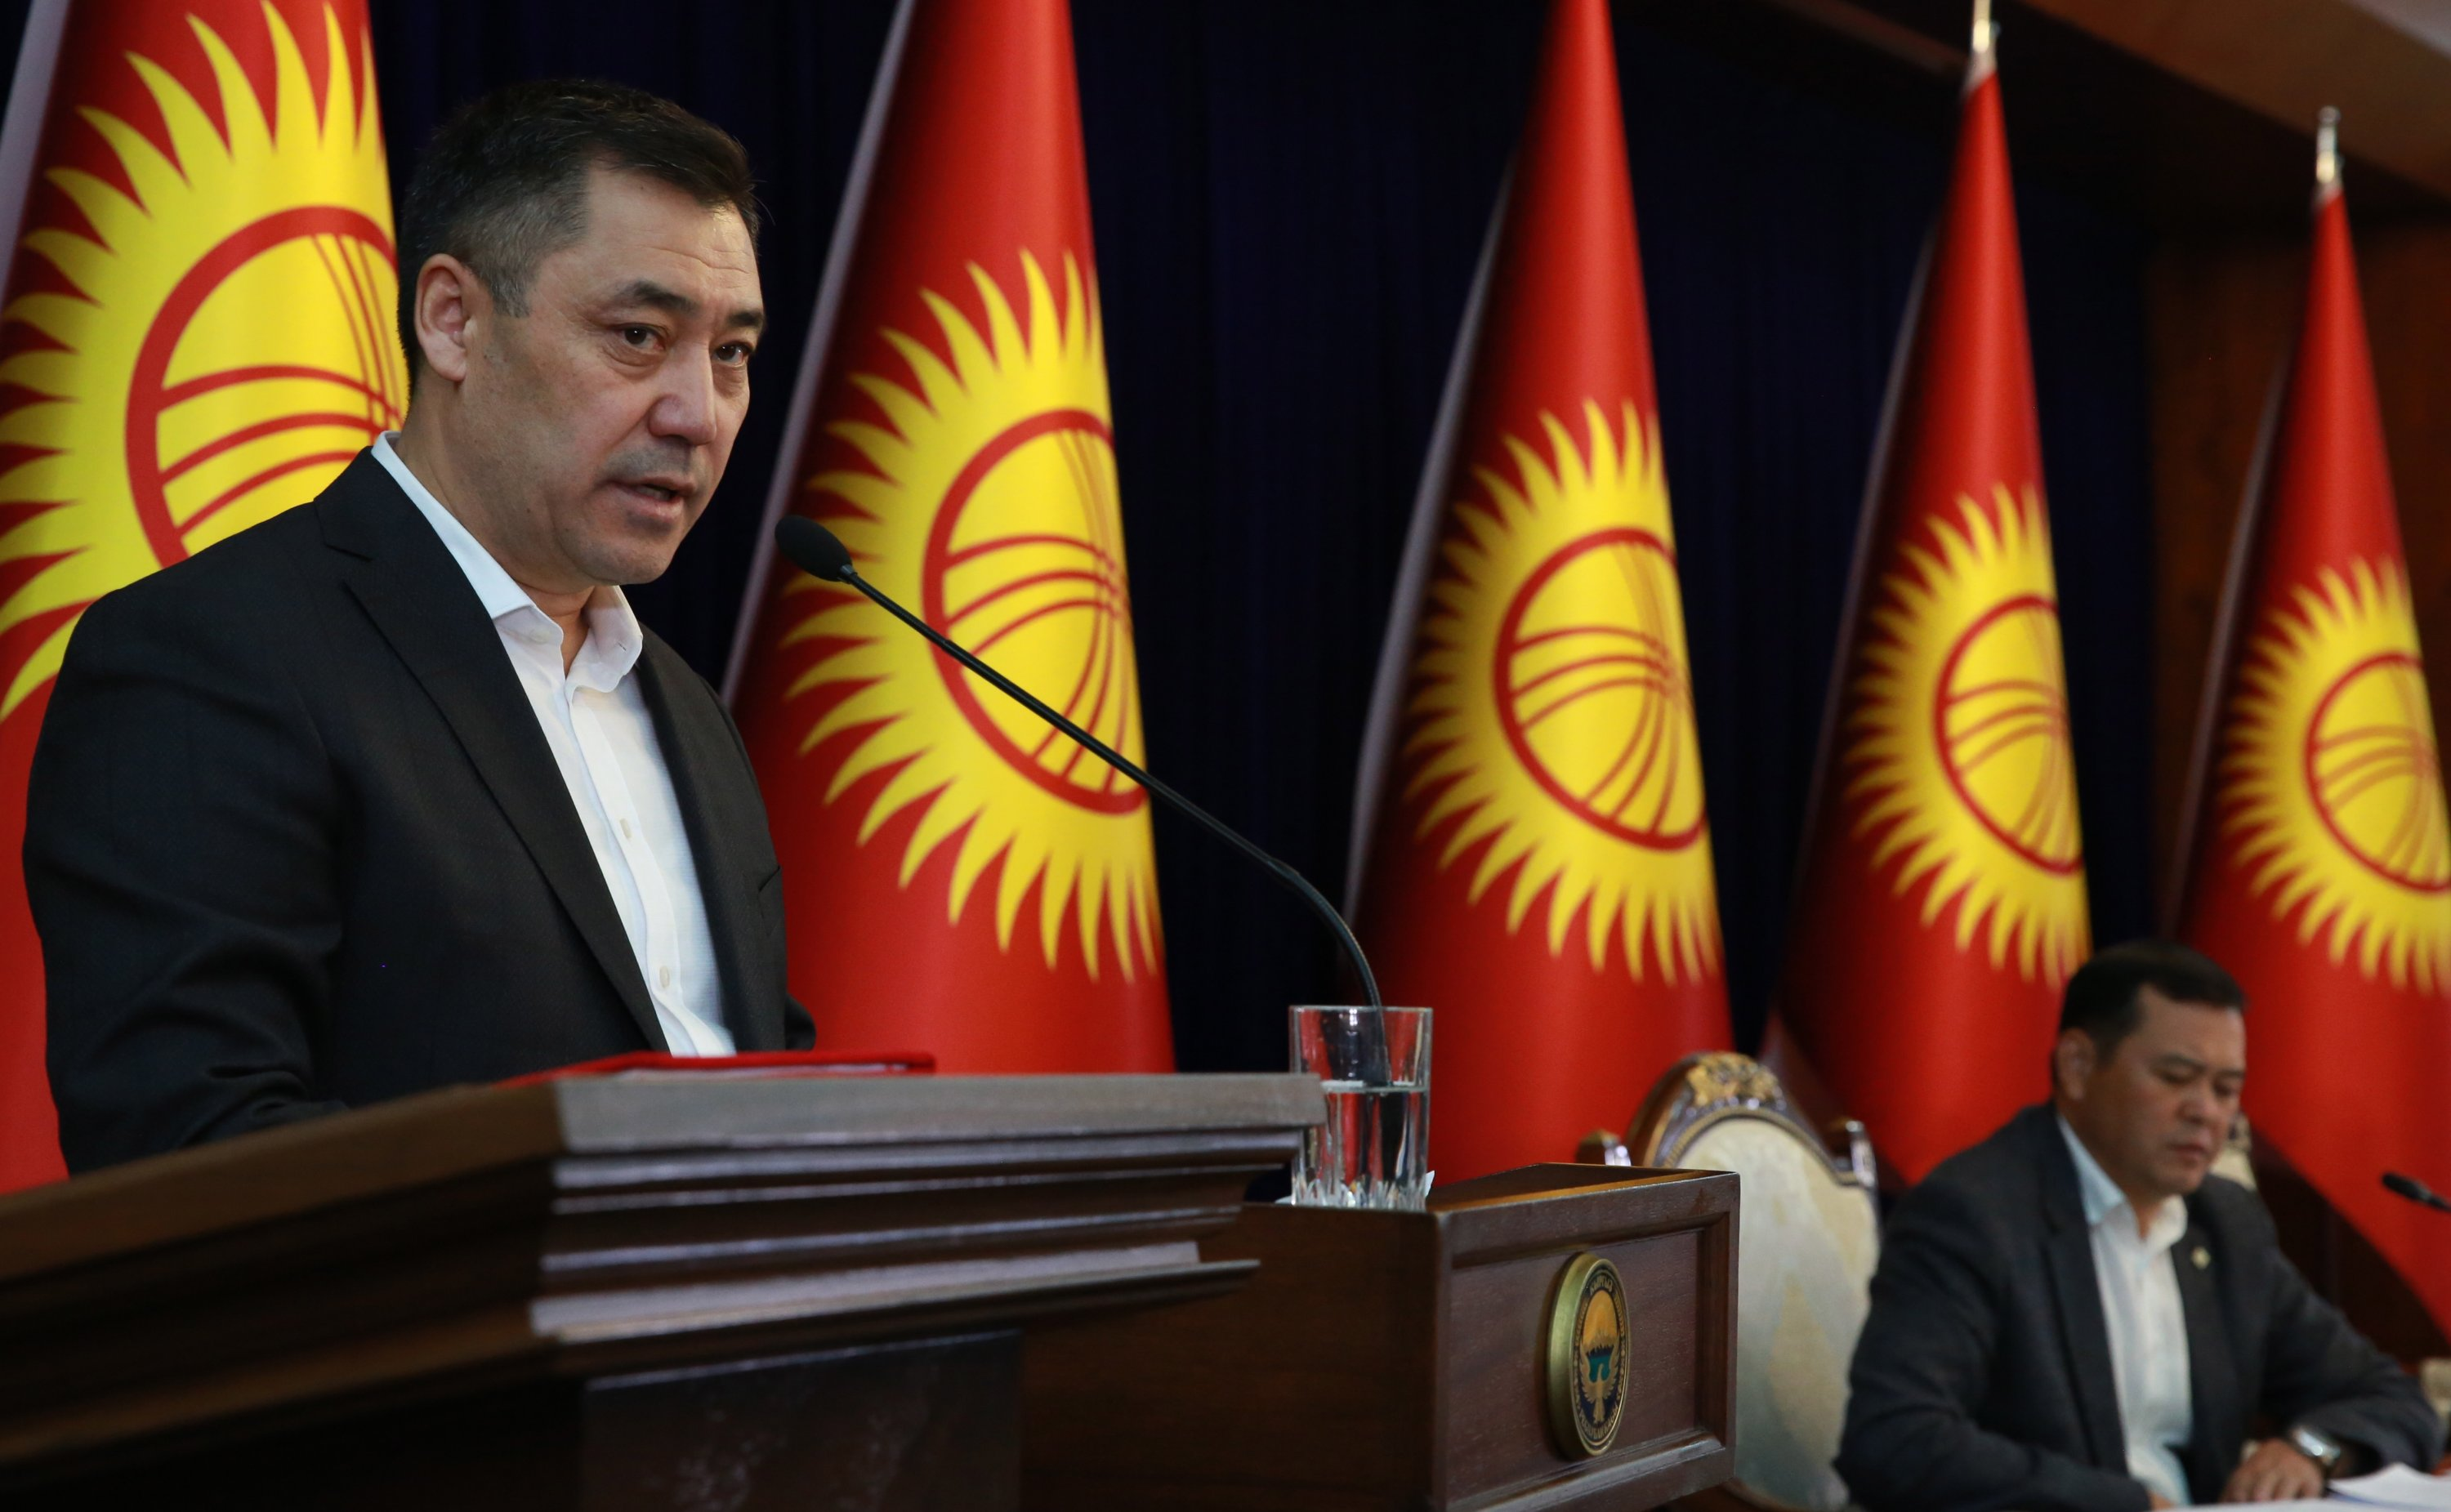 Candidate for the position of Acting Prime Minister of Kyrgyzstan, Sadyr Zhaparov, at an extraordinary session of the parliament at the Ala-Archa residence in Bishkek, Kyrgyzstan, Oct. 10, 2020. (EPA Photo)